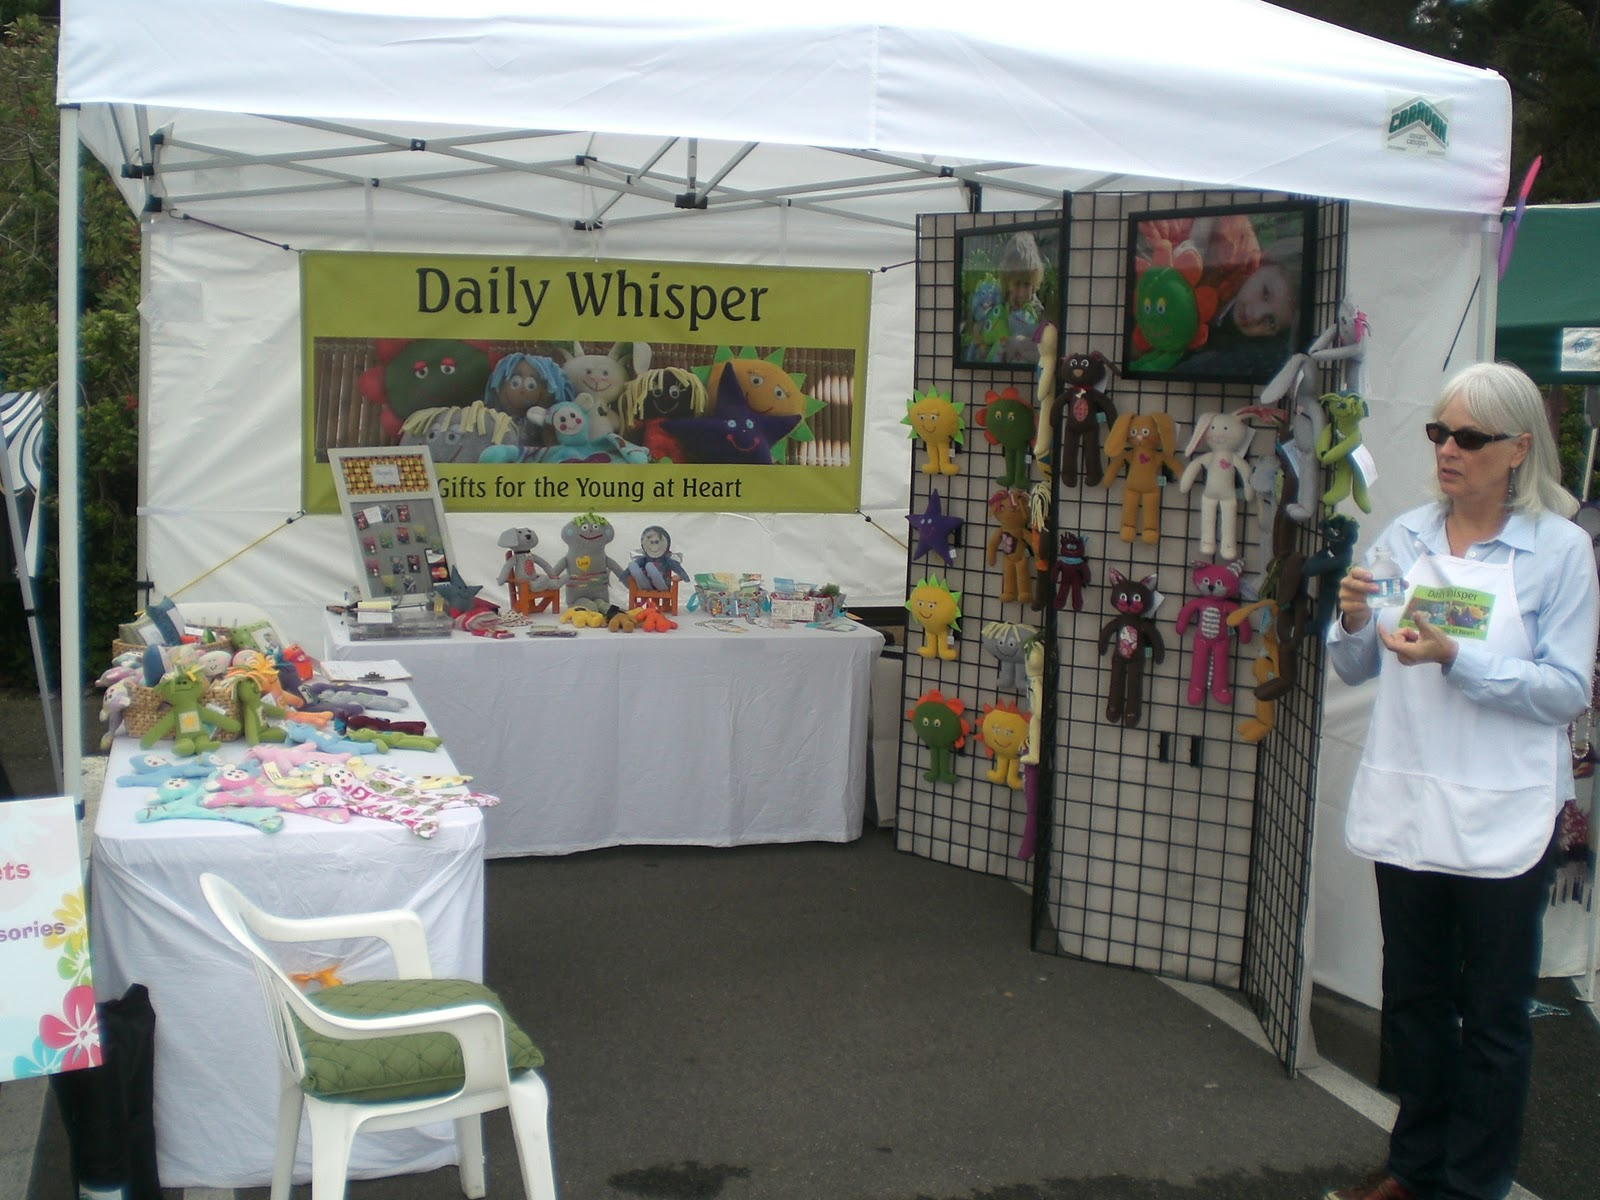 Craft fairs and craft booth ideas daily whispers for Daily photo ideas